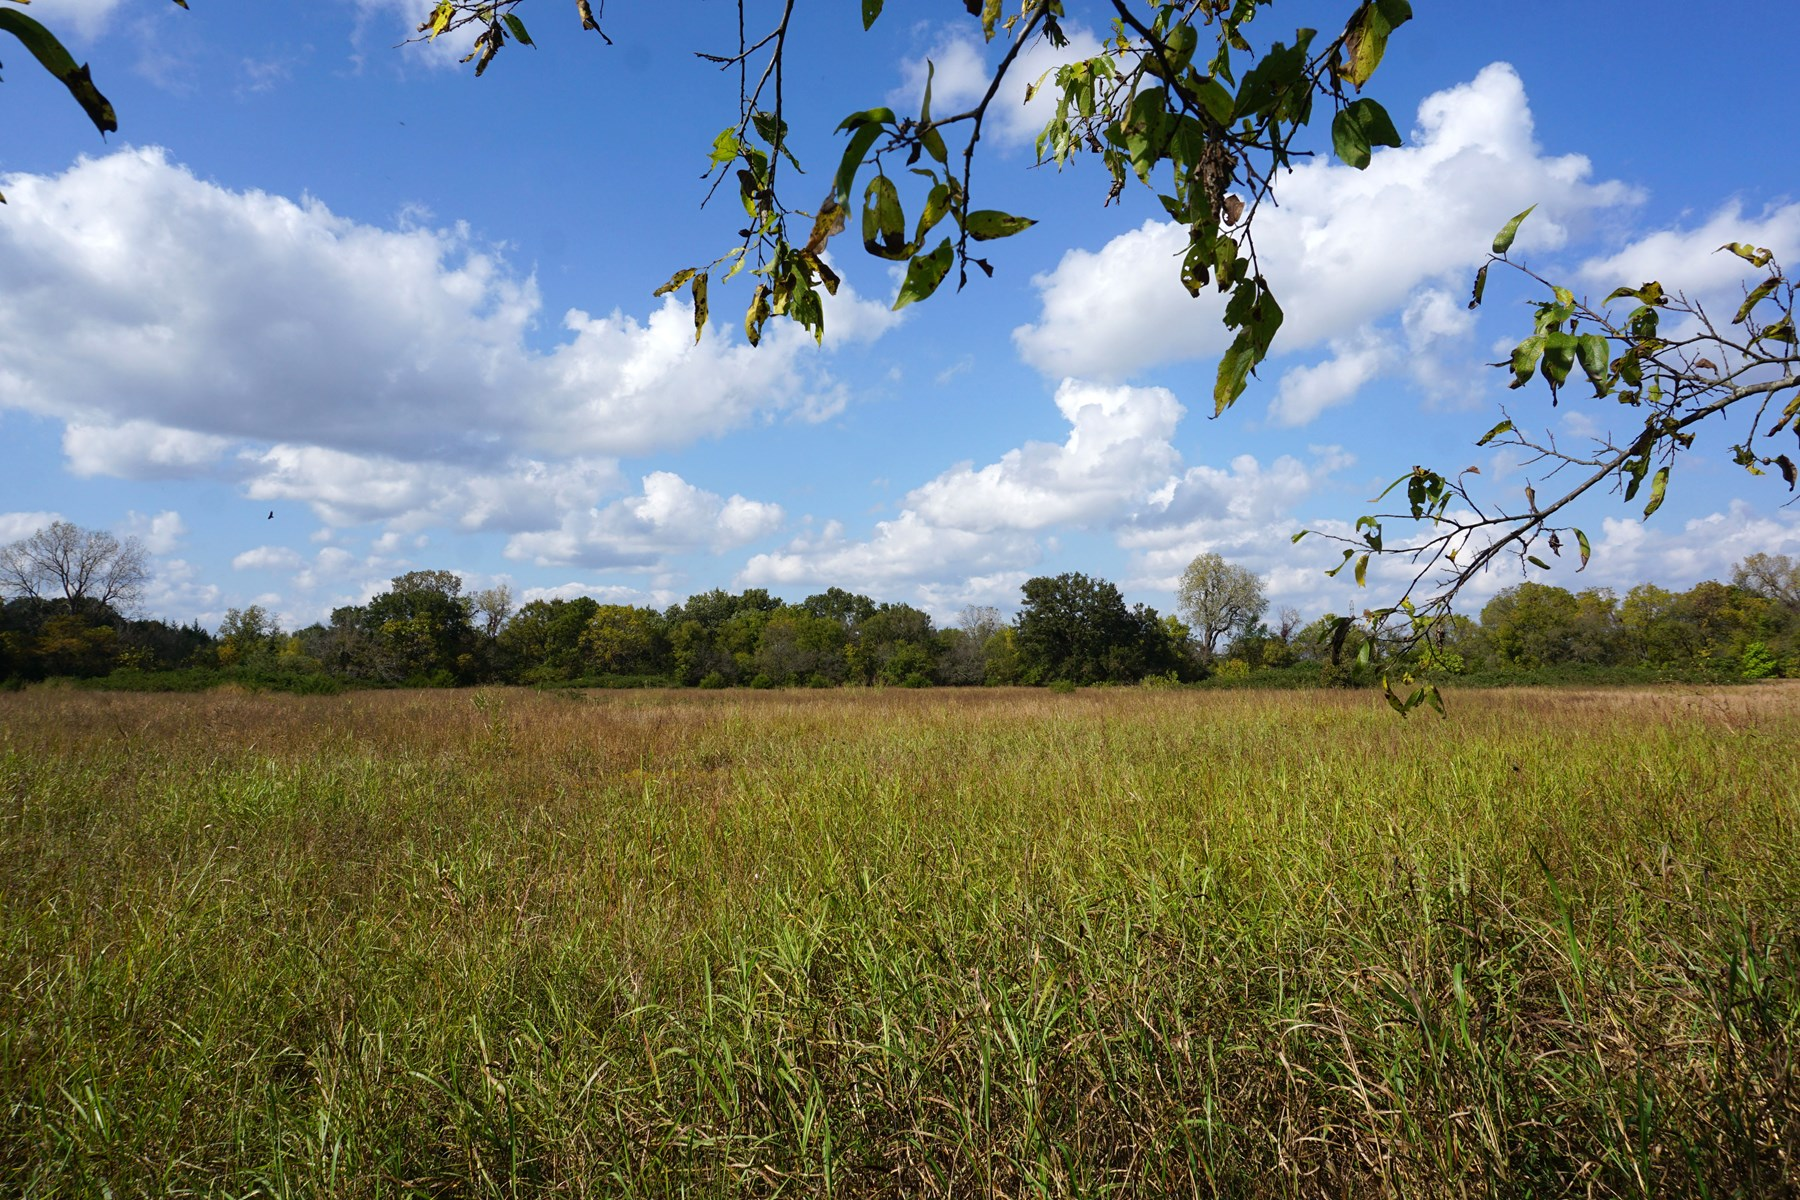 No Reserve Land Auction, Lincoln Co, OK Nov 8 @ 1:30 p.m.